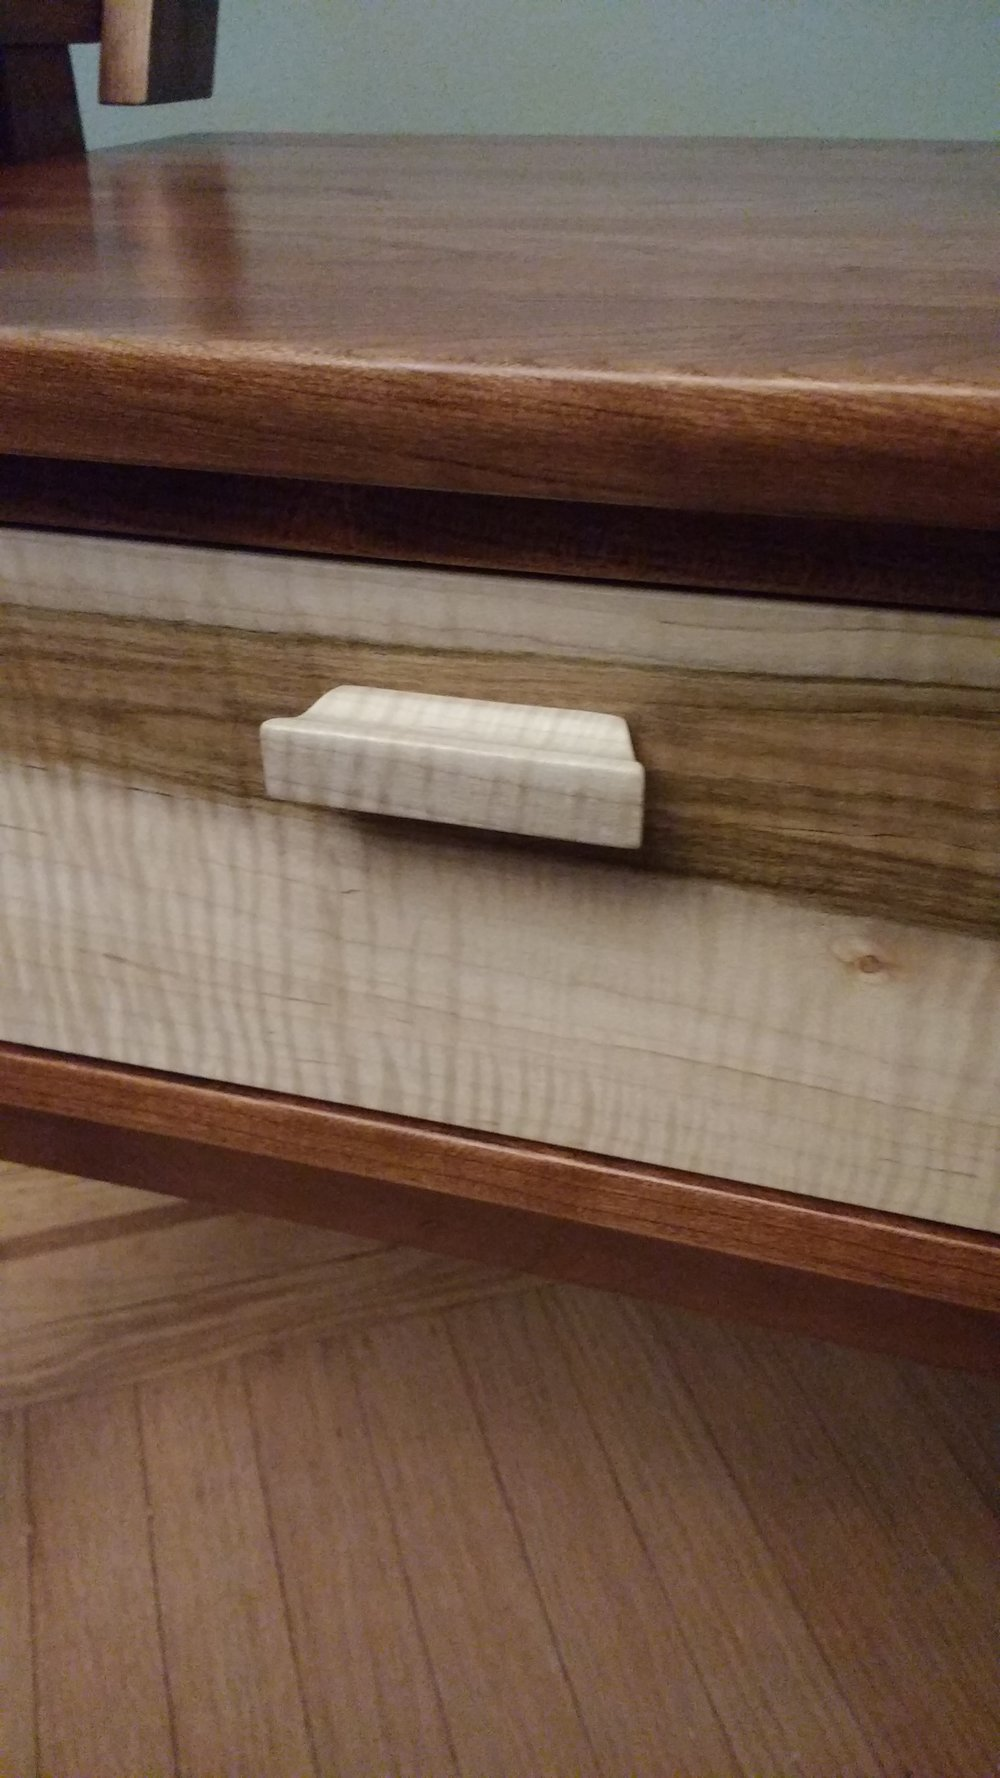 Hall Bench detail